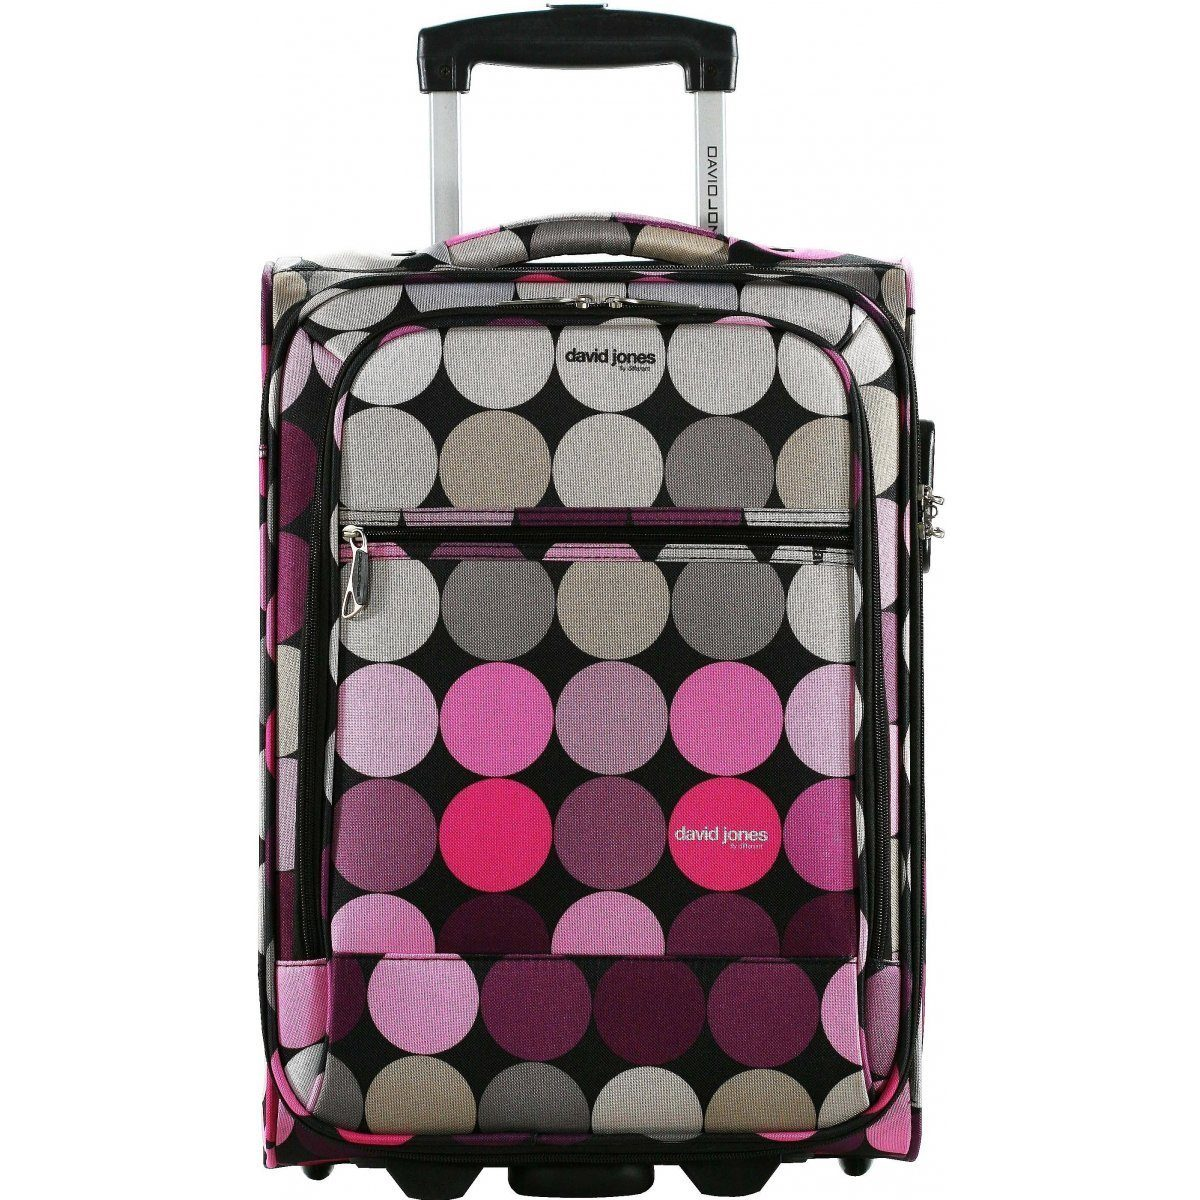 valise cabine David Jones Ryanair